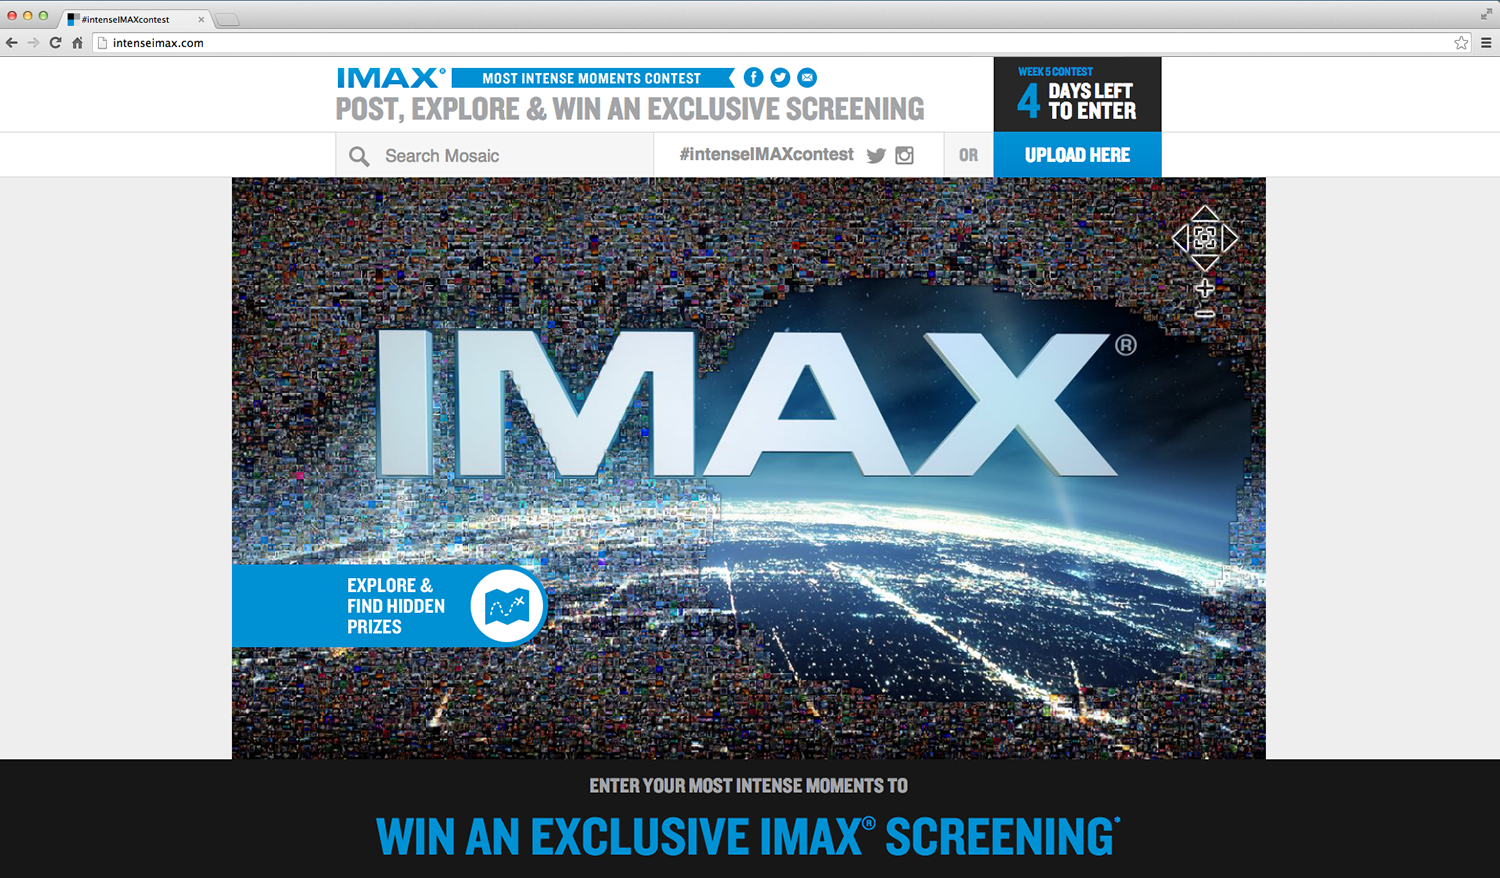 Website_IMAX_Intense_1.png